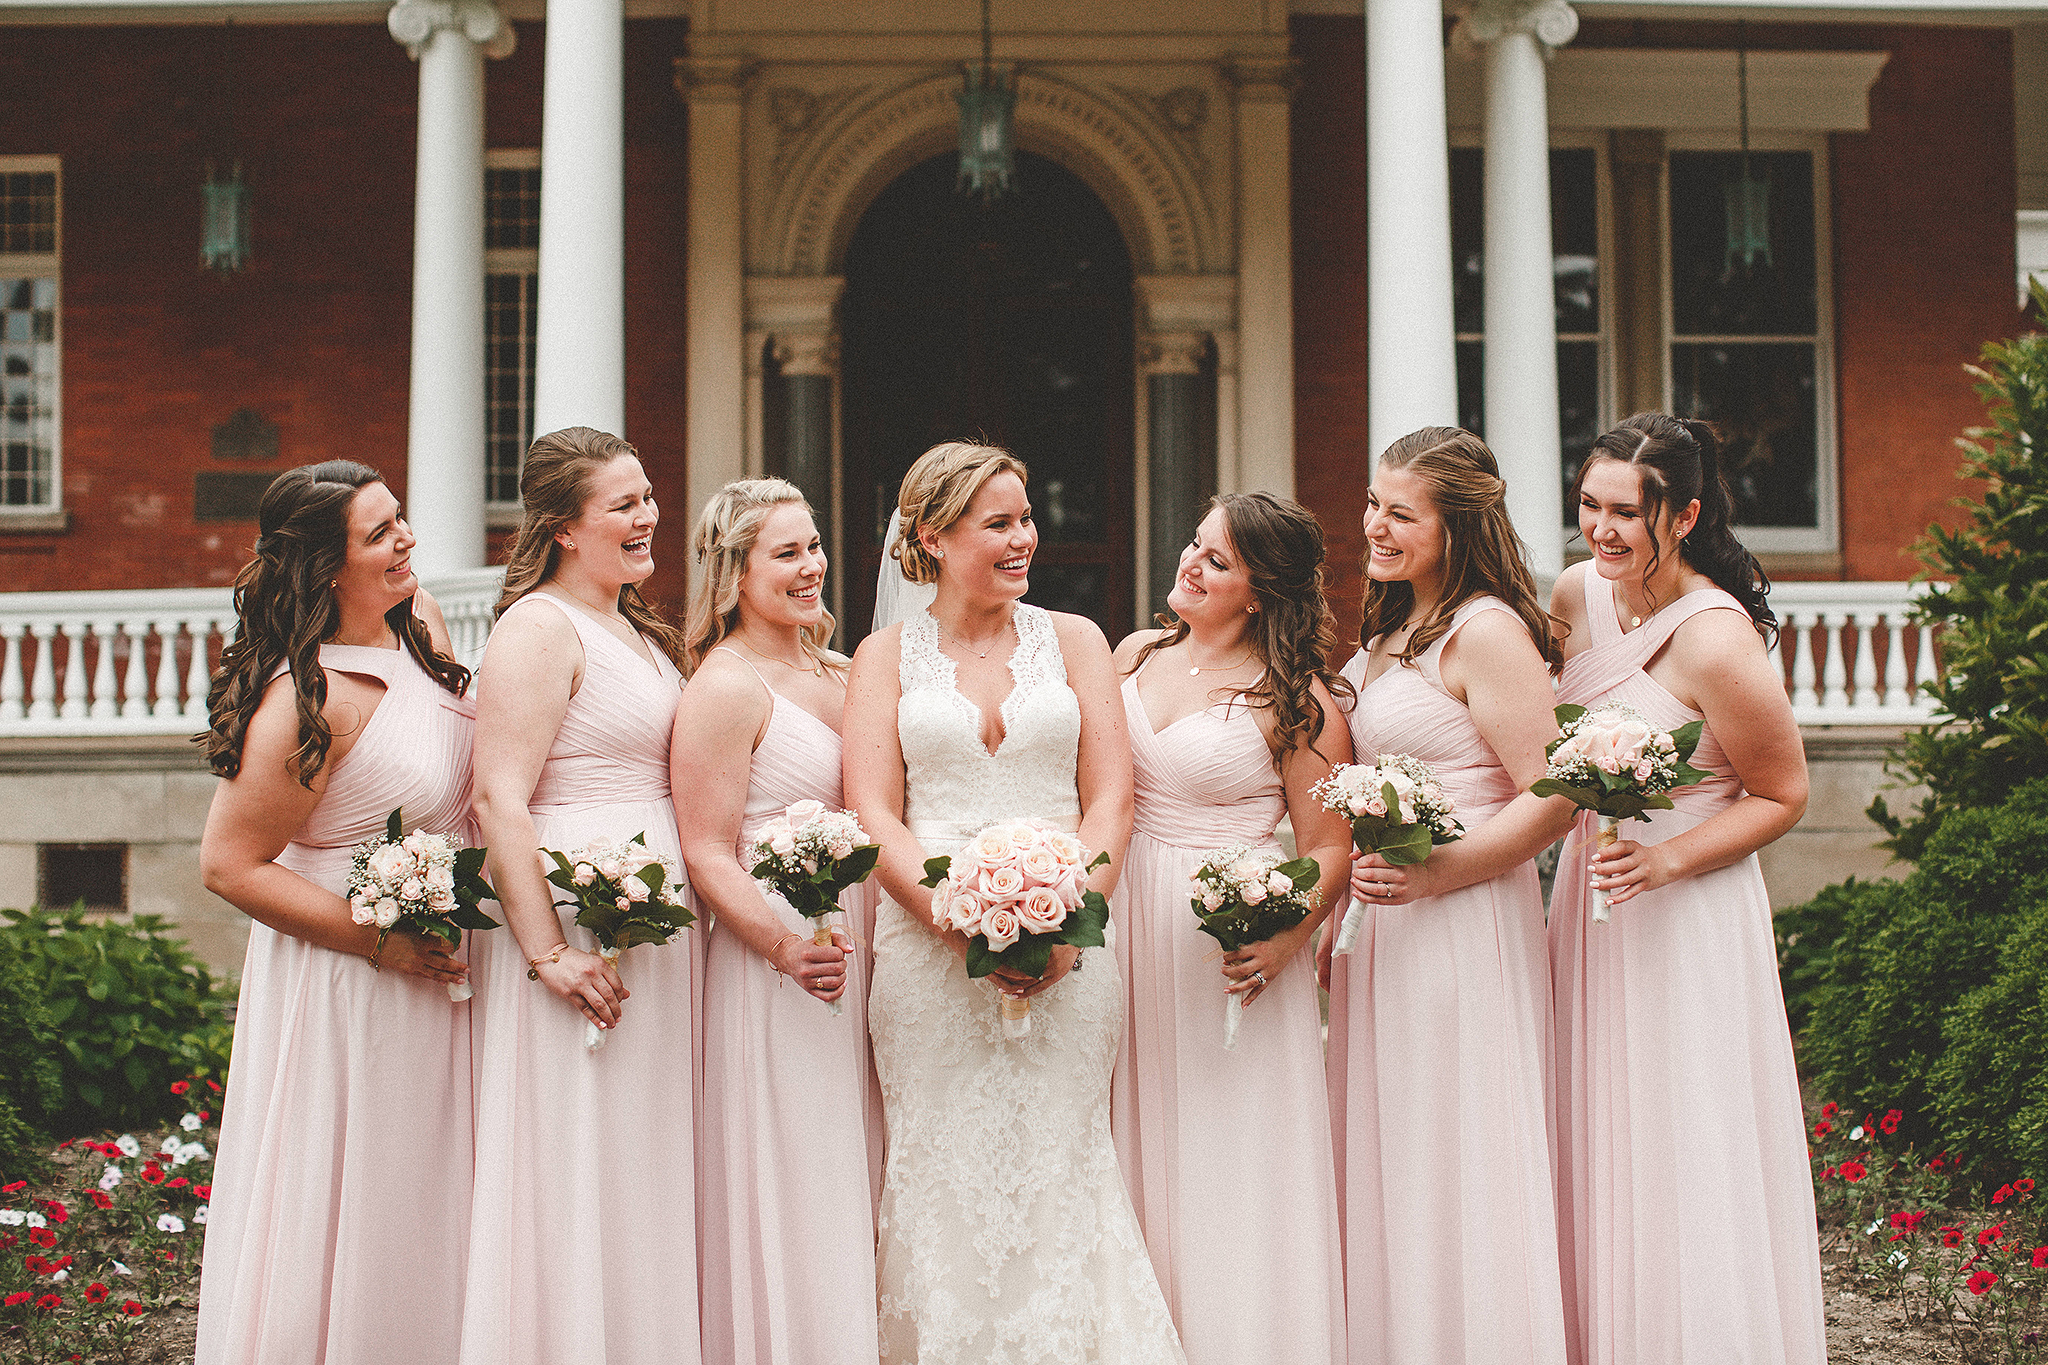 candid image of bride and bridesmaids laughing | dekalb, Il wedding photographer